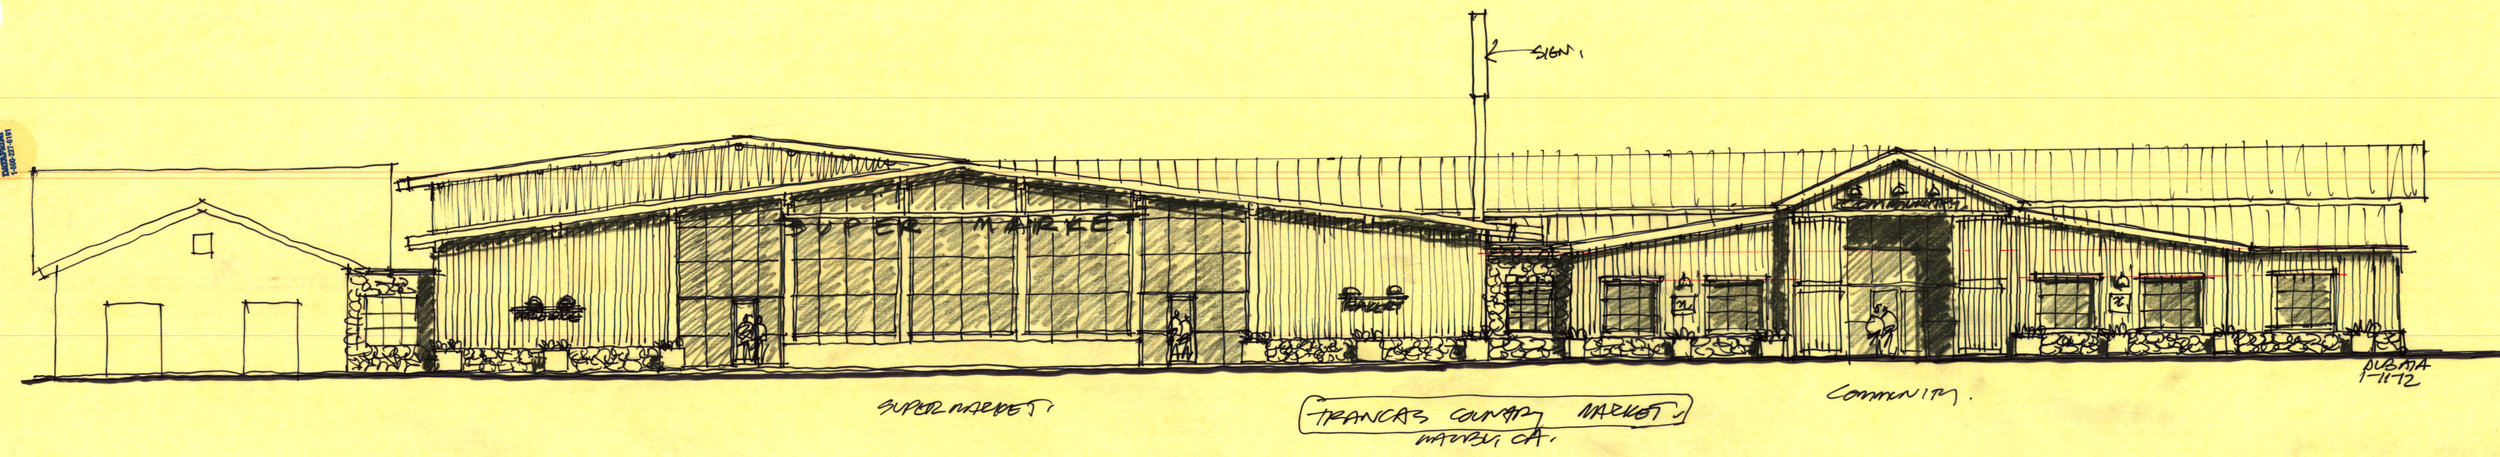 """Burdge's sketch ahead of his renovations of the Trancas Country Mart and above, the finished product. If the Country Mart project sustained some community pushback in the beginning, as soon as it opened it was garnering glowing reviews from locals. """"It very much fit the vibe and desires of western Malibu,"""" said Malibu City Council member Laura Rosenthal."""